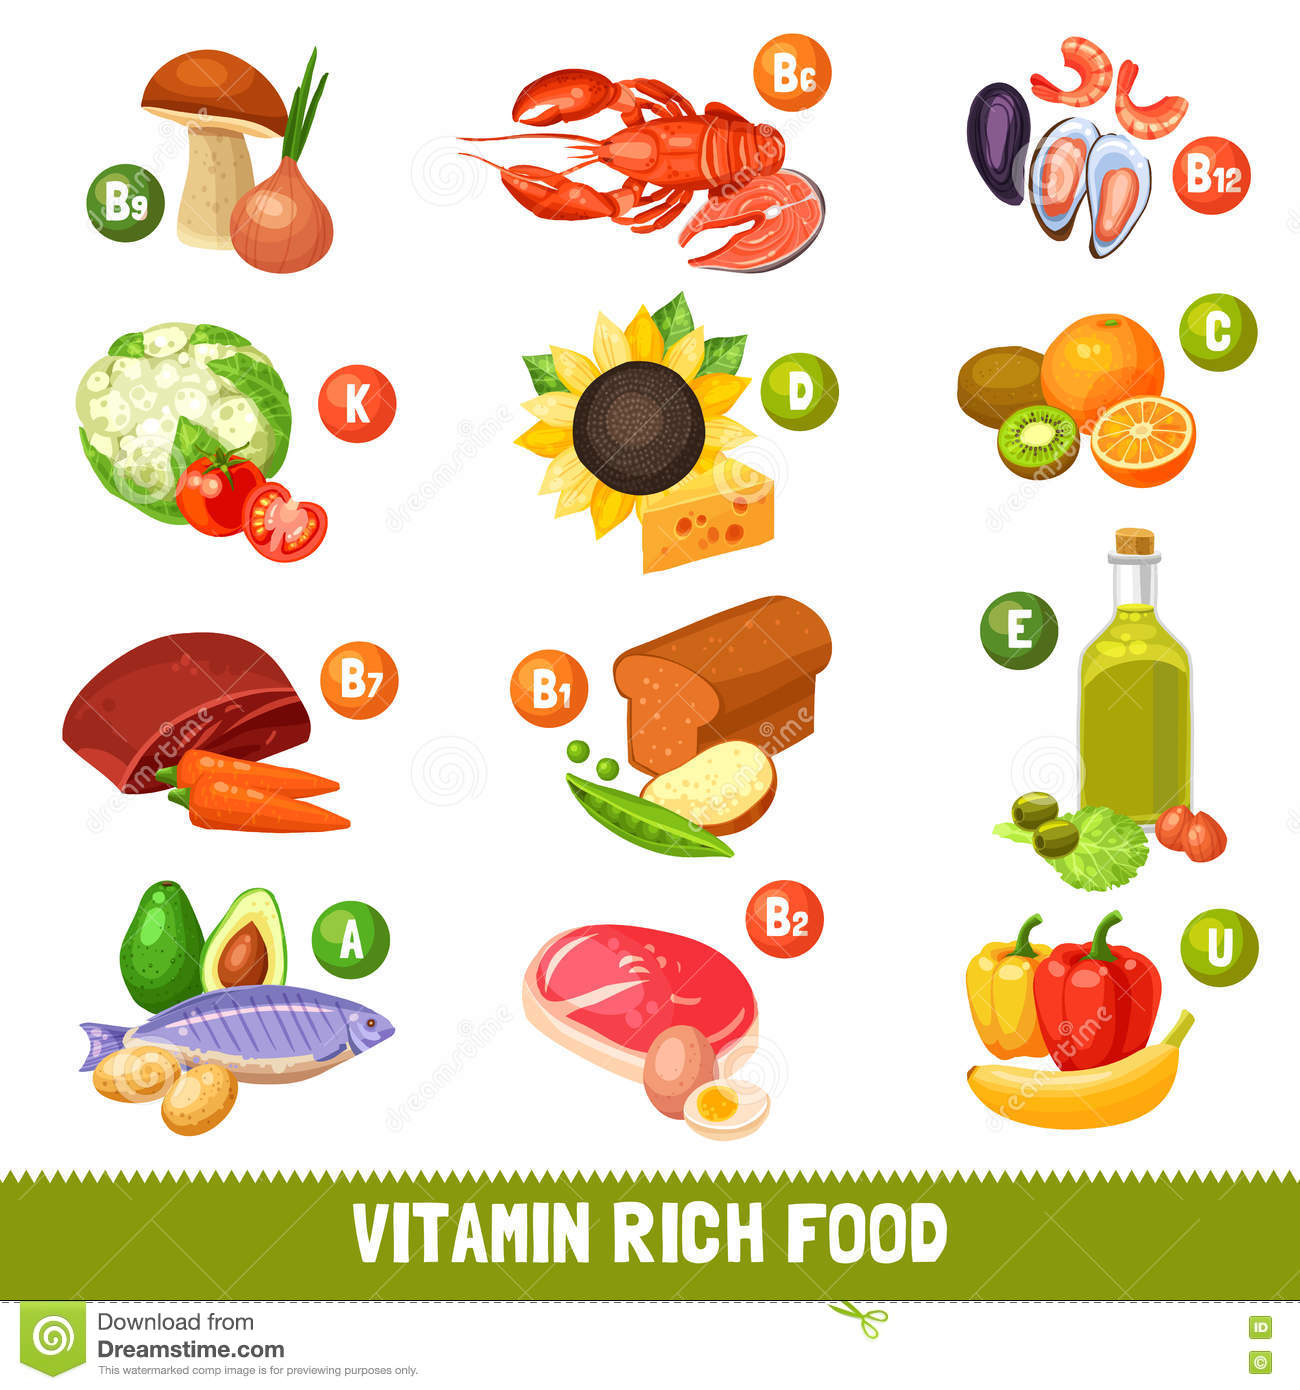 Vitamin C Enriched Foods List